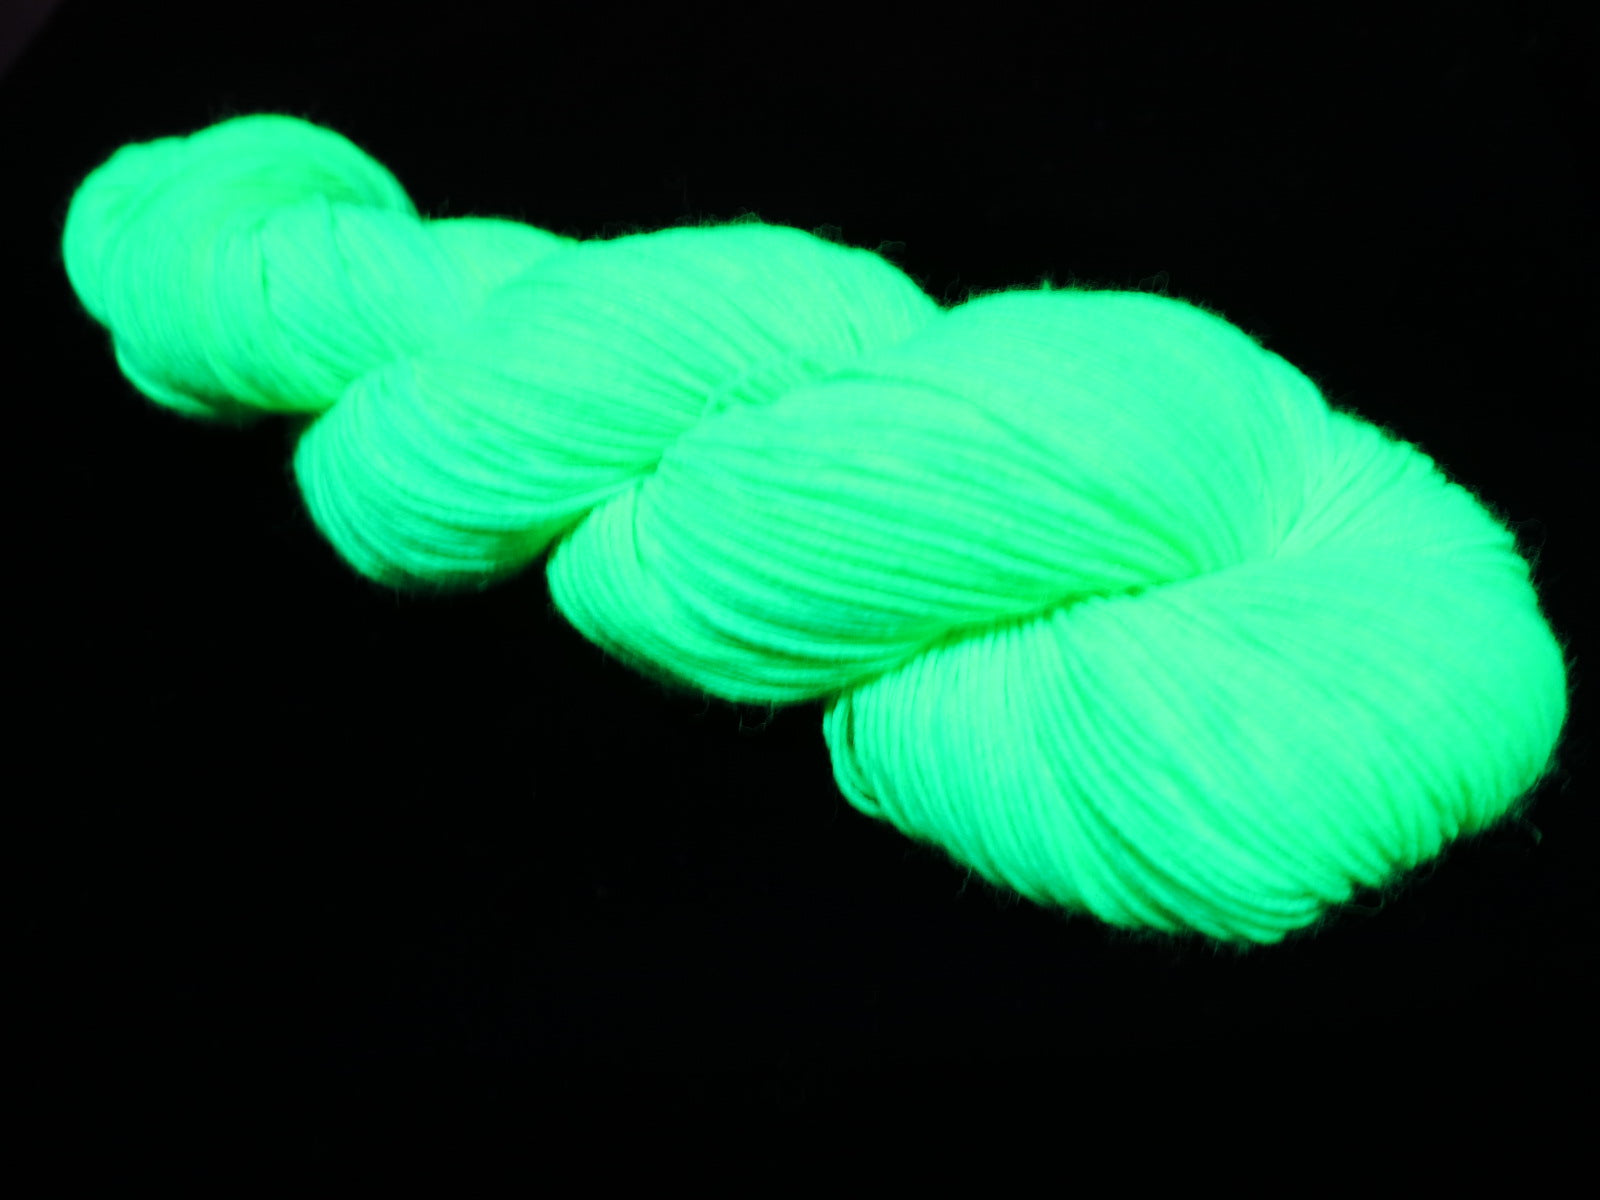 green uv reactive knitting yarn glowing under fluorescent blacklight